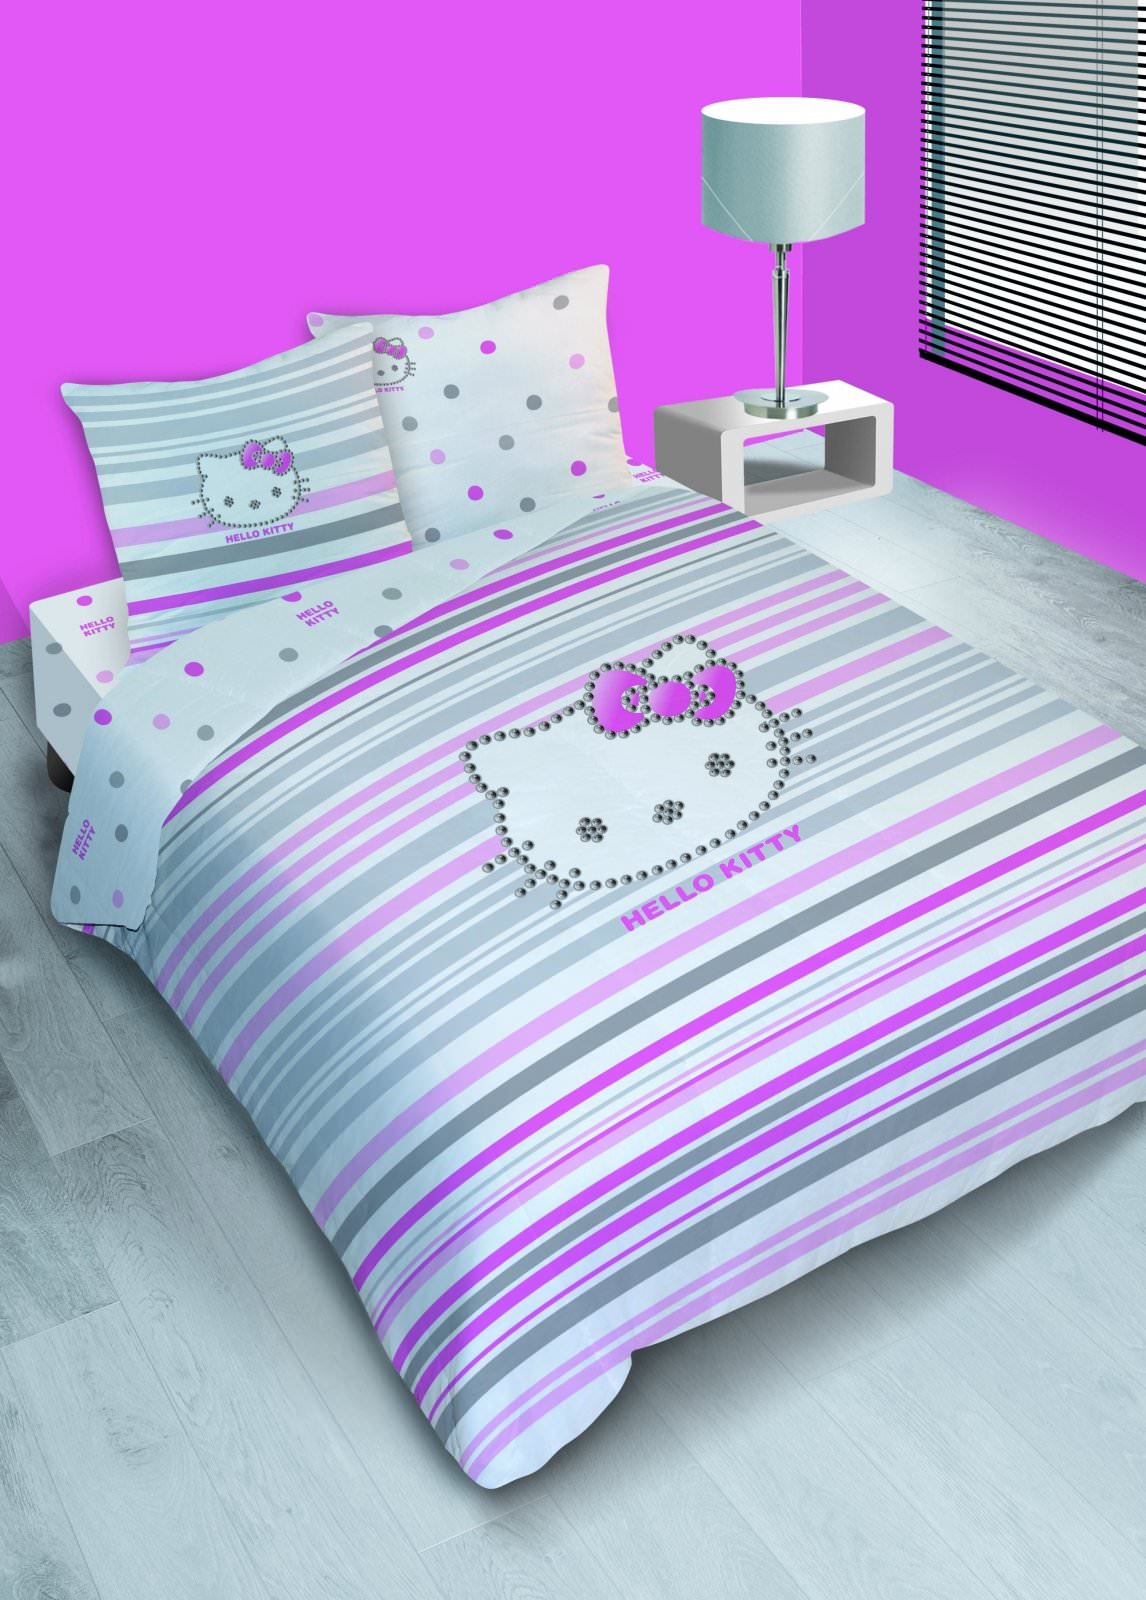 housse de couette hello kitty 140 x 200 cm parure de lit strass decokids. Black Bedroom Furniture Sets. Home Design Ideas